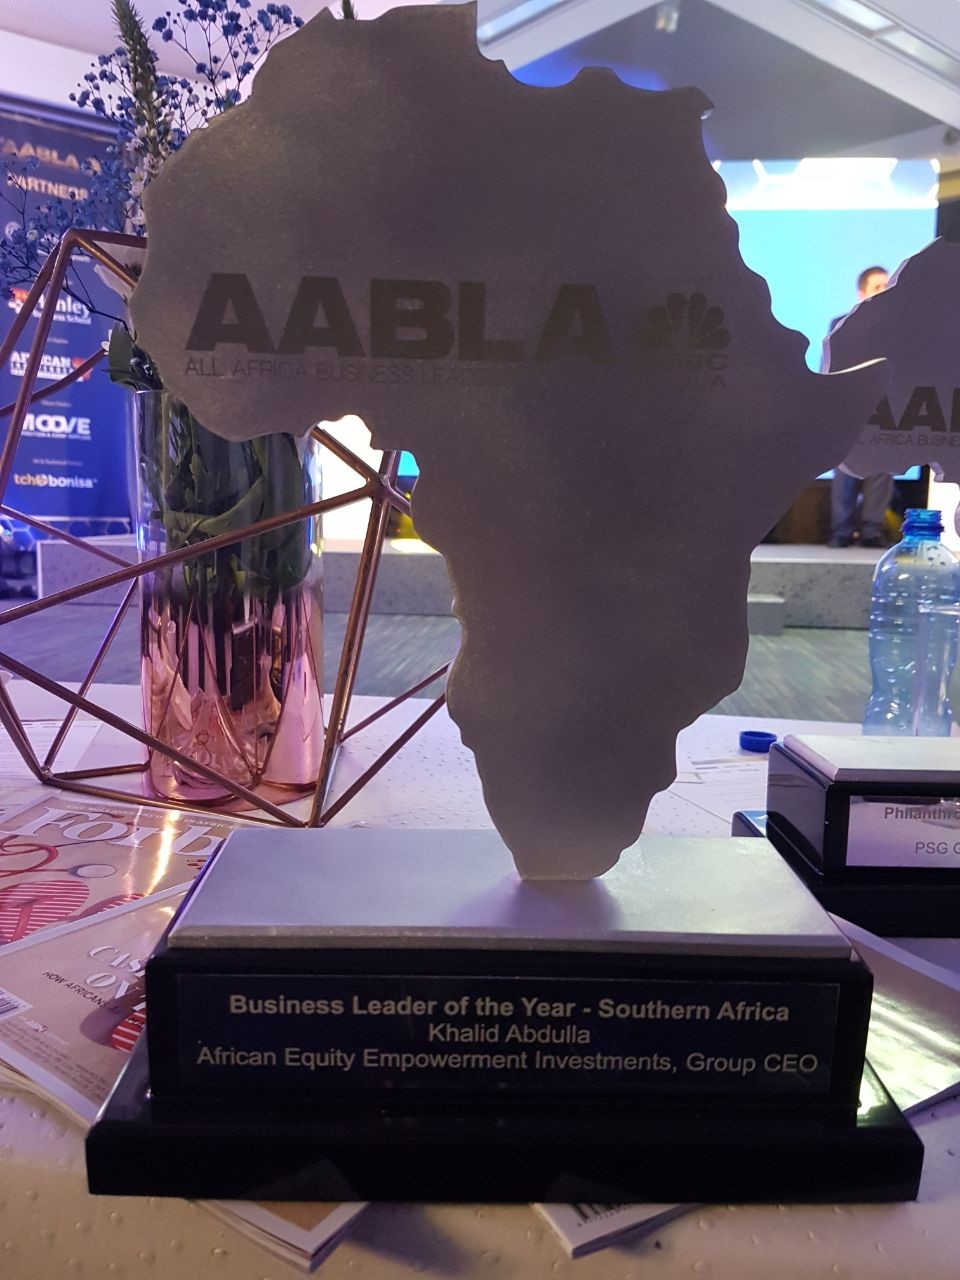 Khalid Abdulla's award for Business Leader of the Year